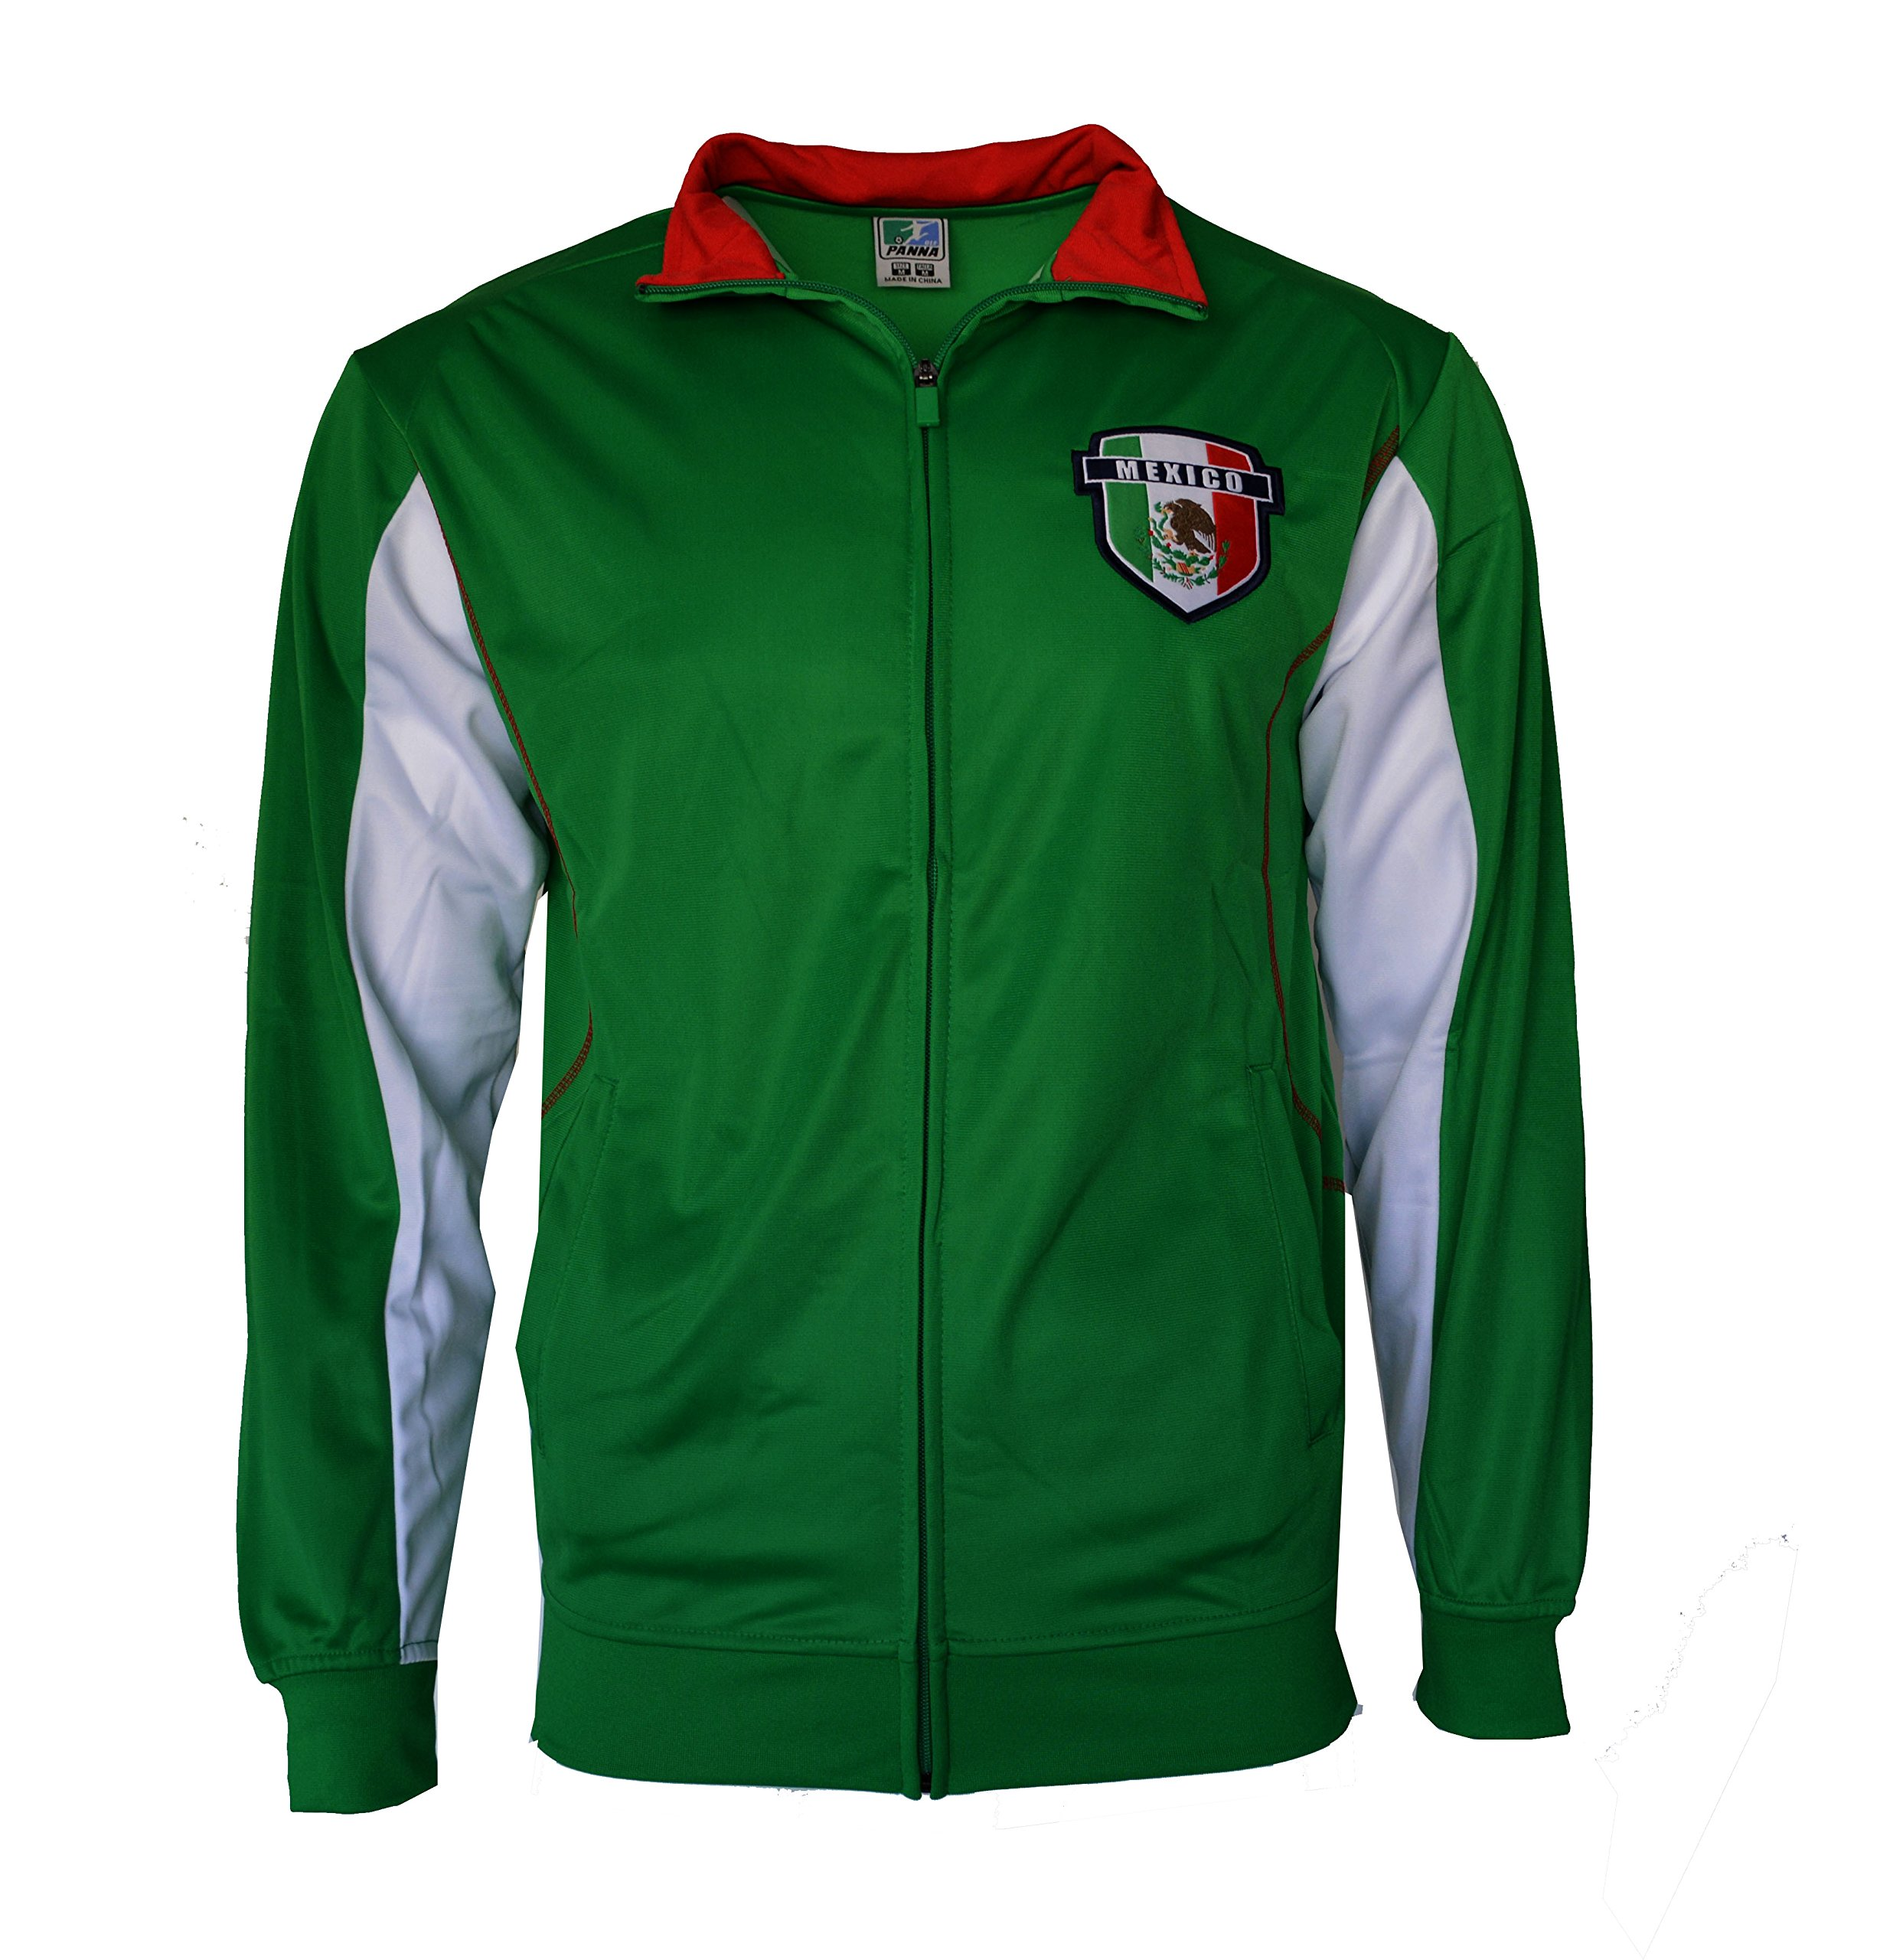 PANA Mexico Jacket Flag Track Lightweight Summer Adult Soccer Zip up (Green, L) by PANA